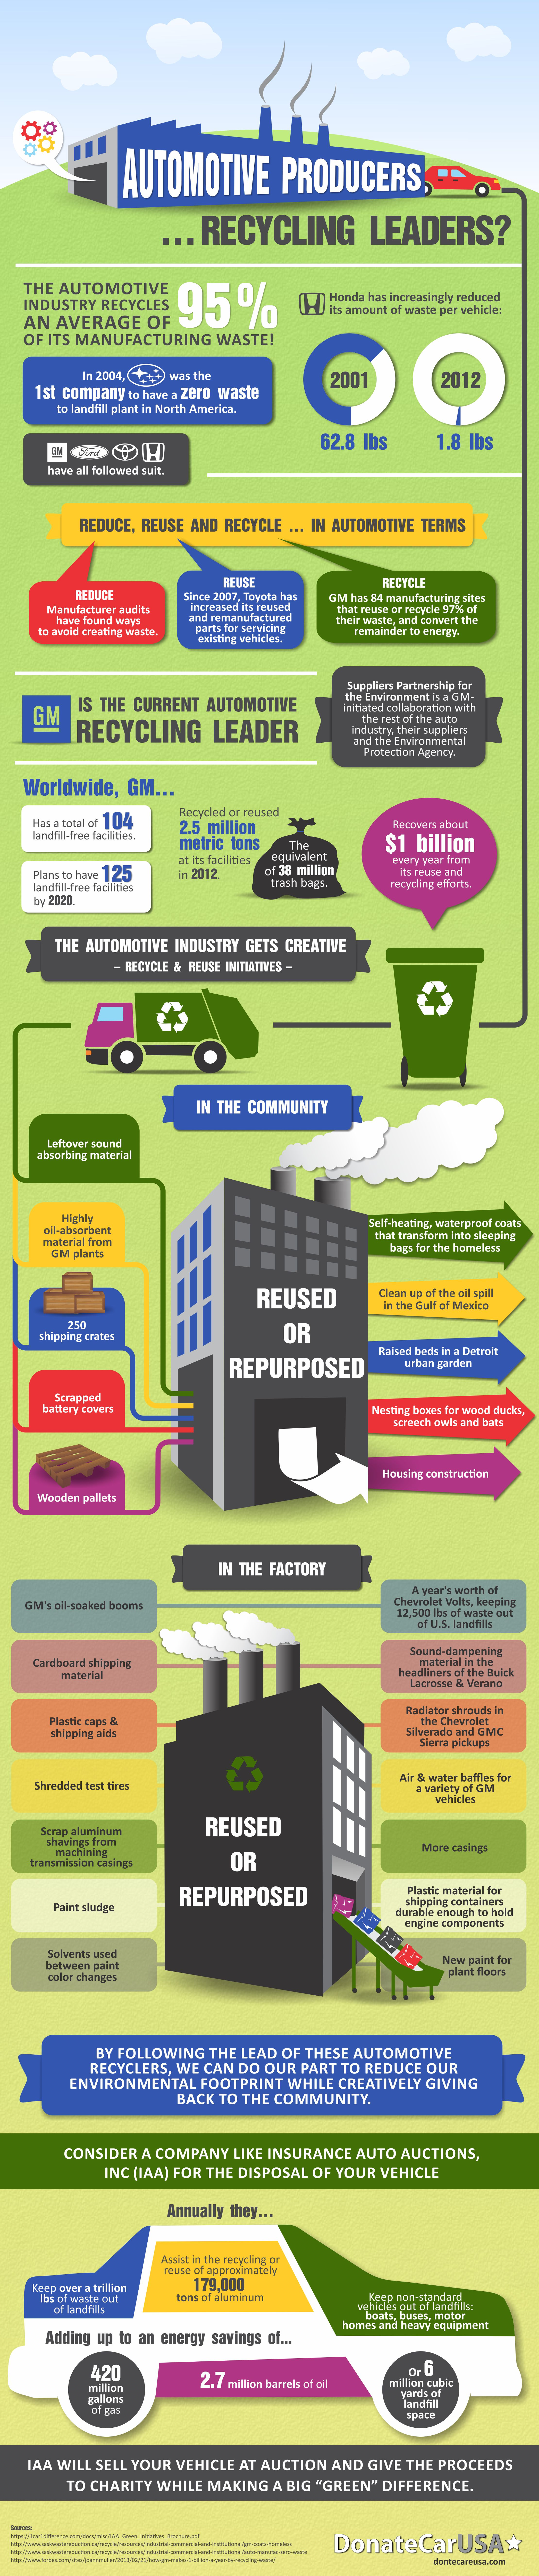 Automotive Producers: Recycling Leaders?